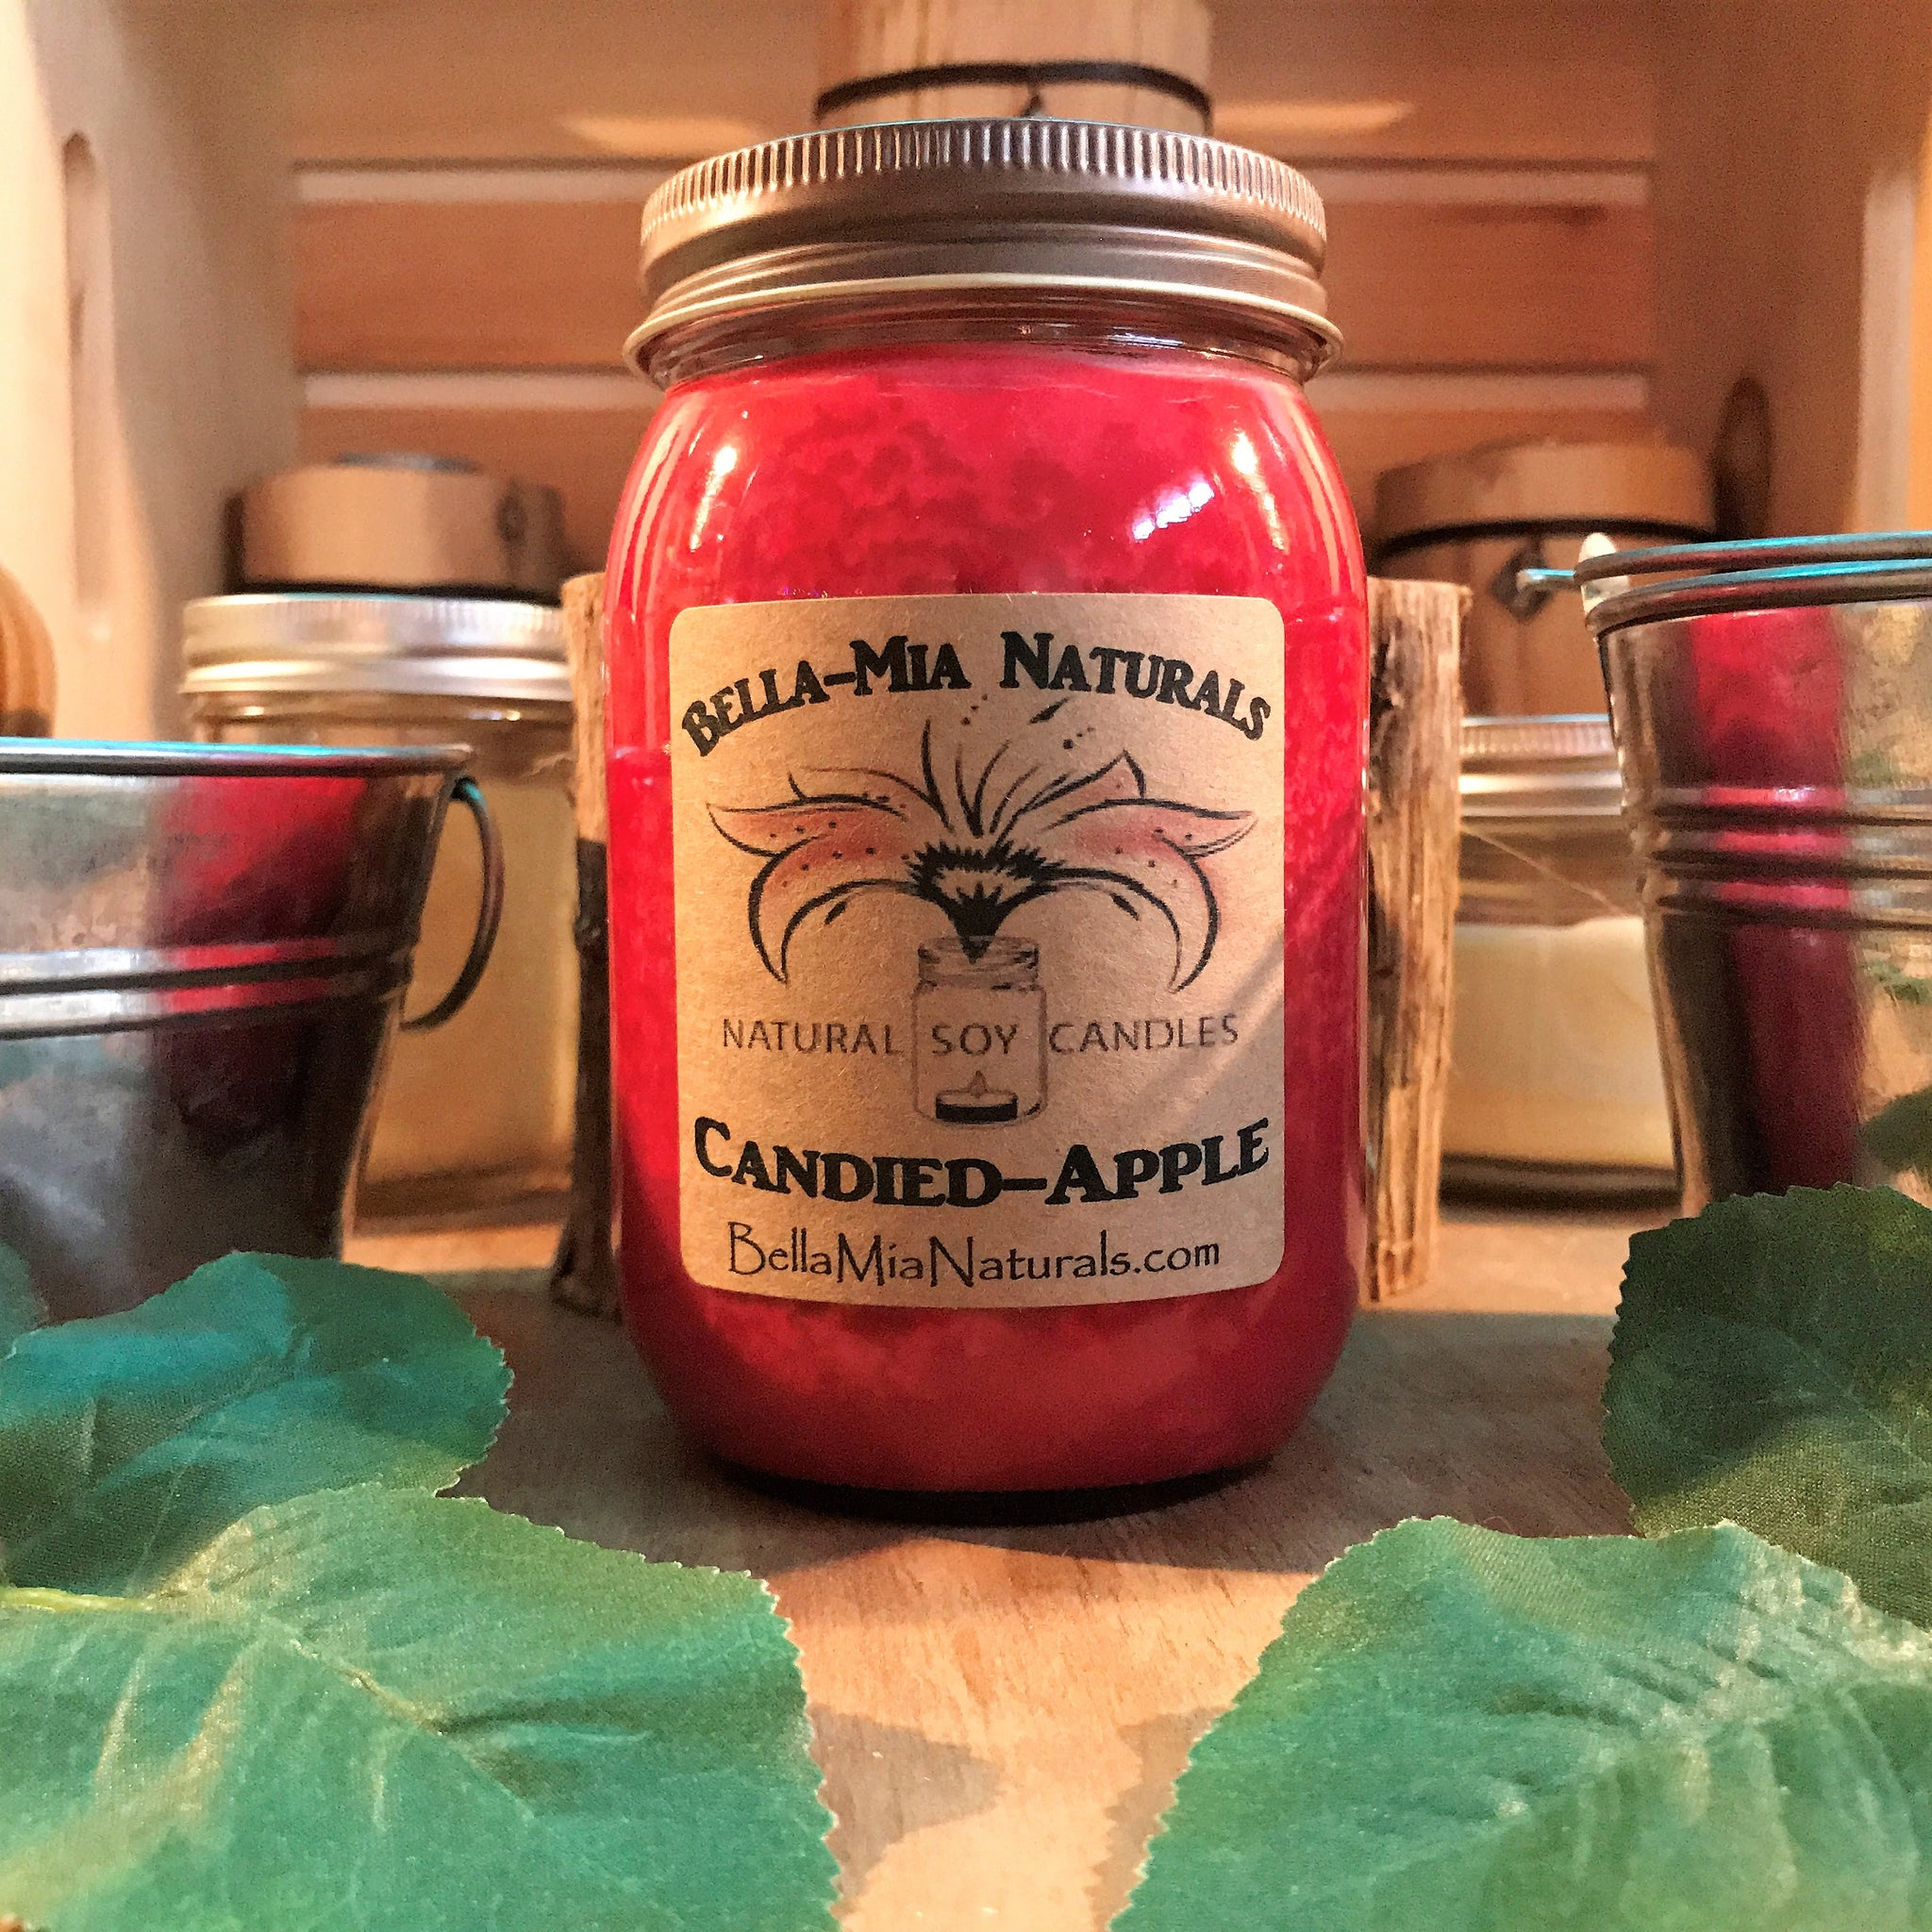 Candied-Apple Natural Hand Poured Soy Candles